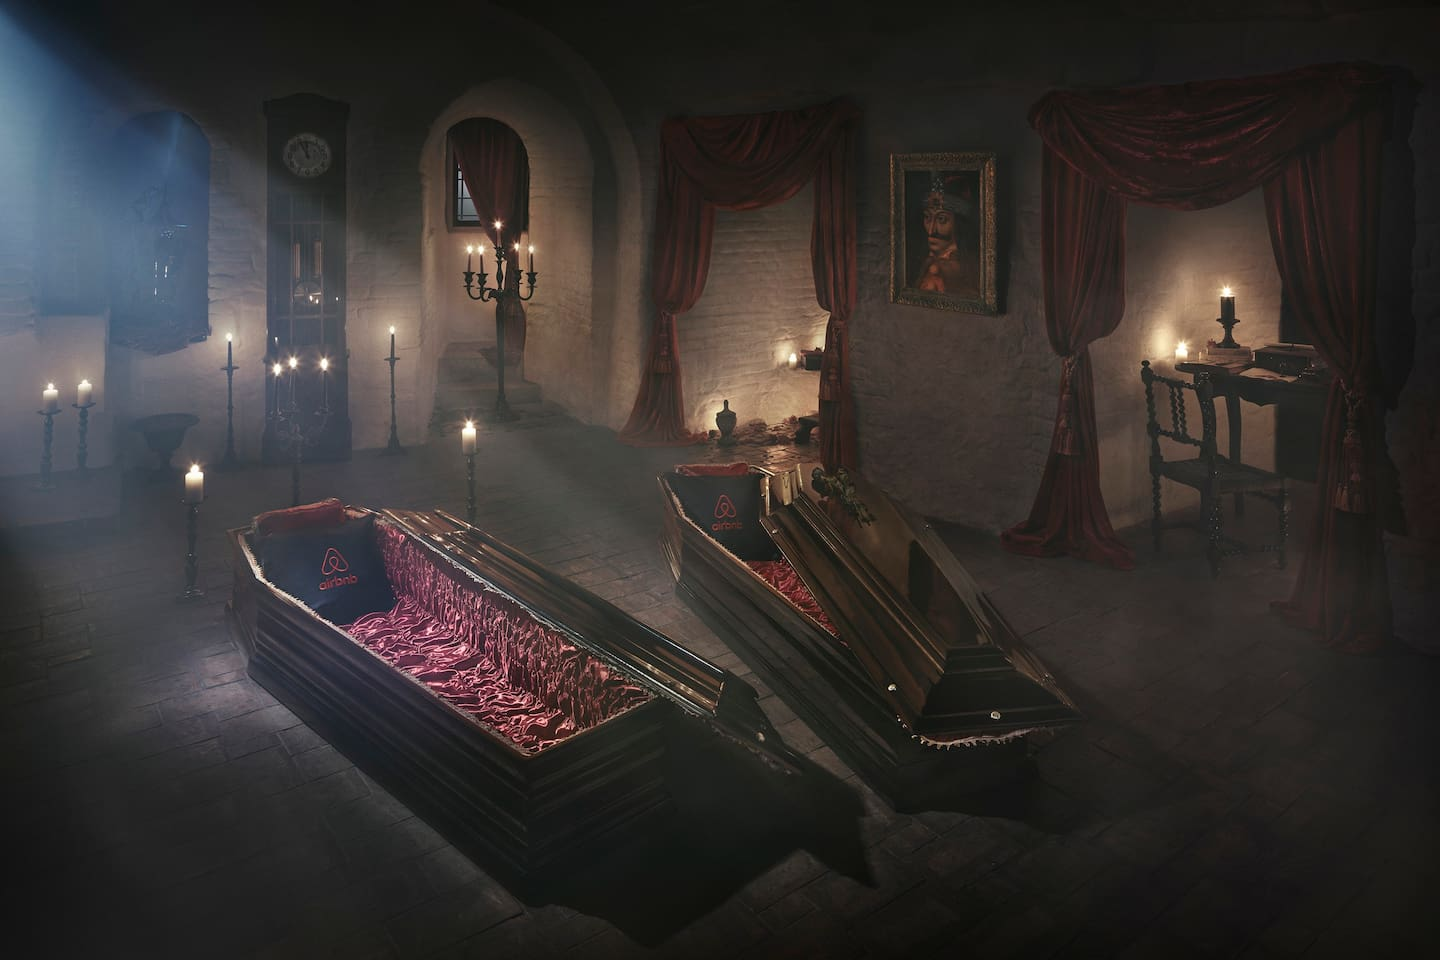 Spend the night in Dracula's vault. The count has generously allowed you to sleep in his coffin.